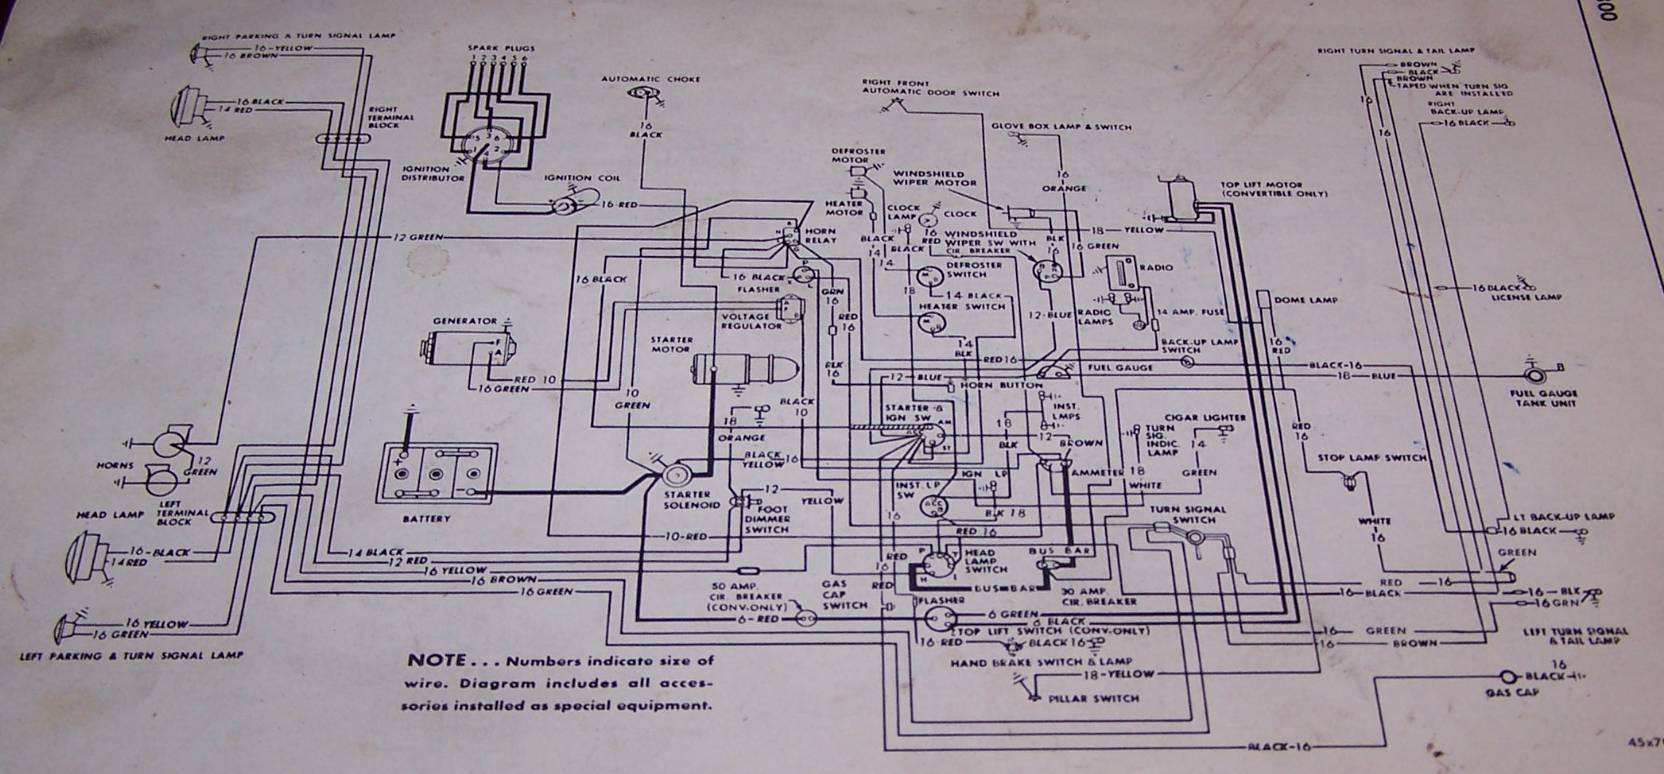 mopar headlight switch wiring diagram on ford headlight wiring diagram, gm  headlight